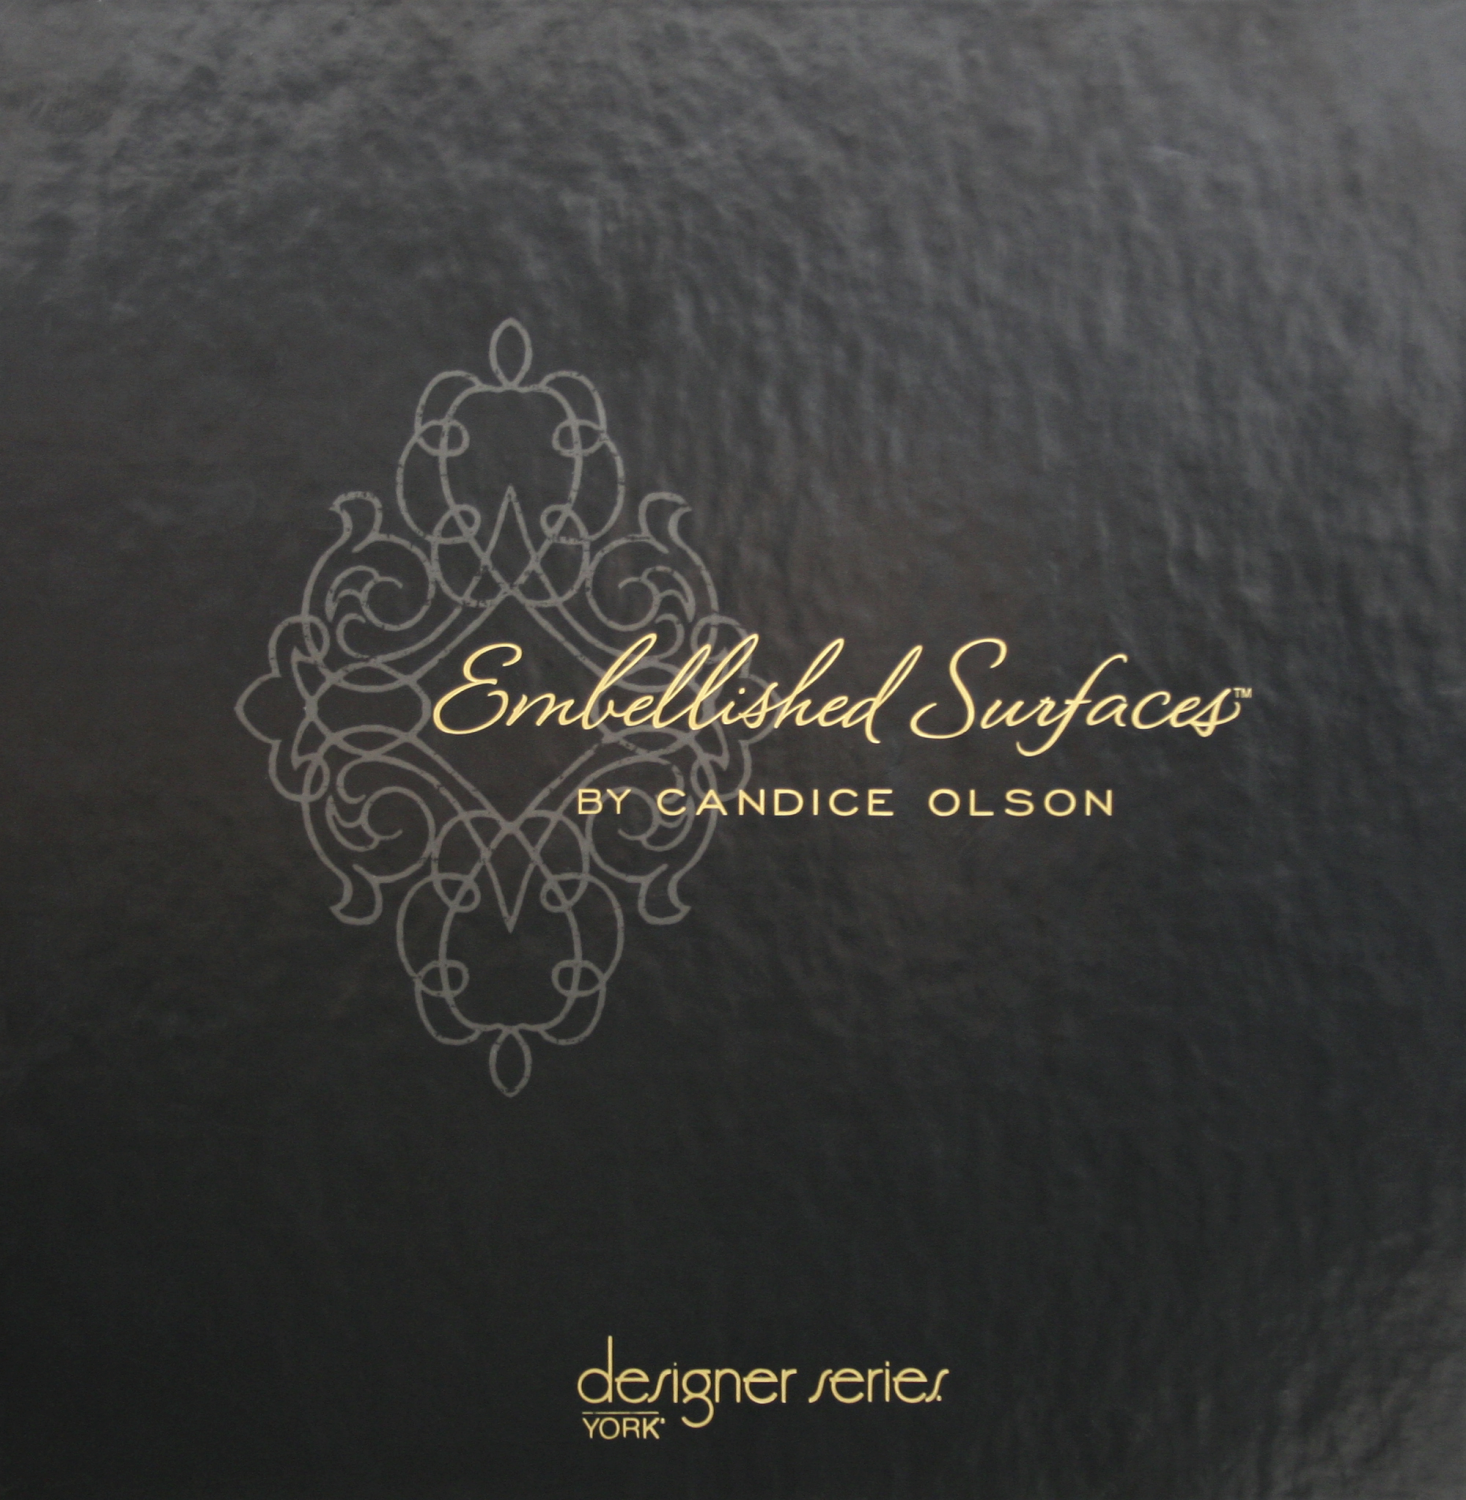 Candice Olson Embellished Surfaces Wallpaper Book